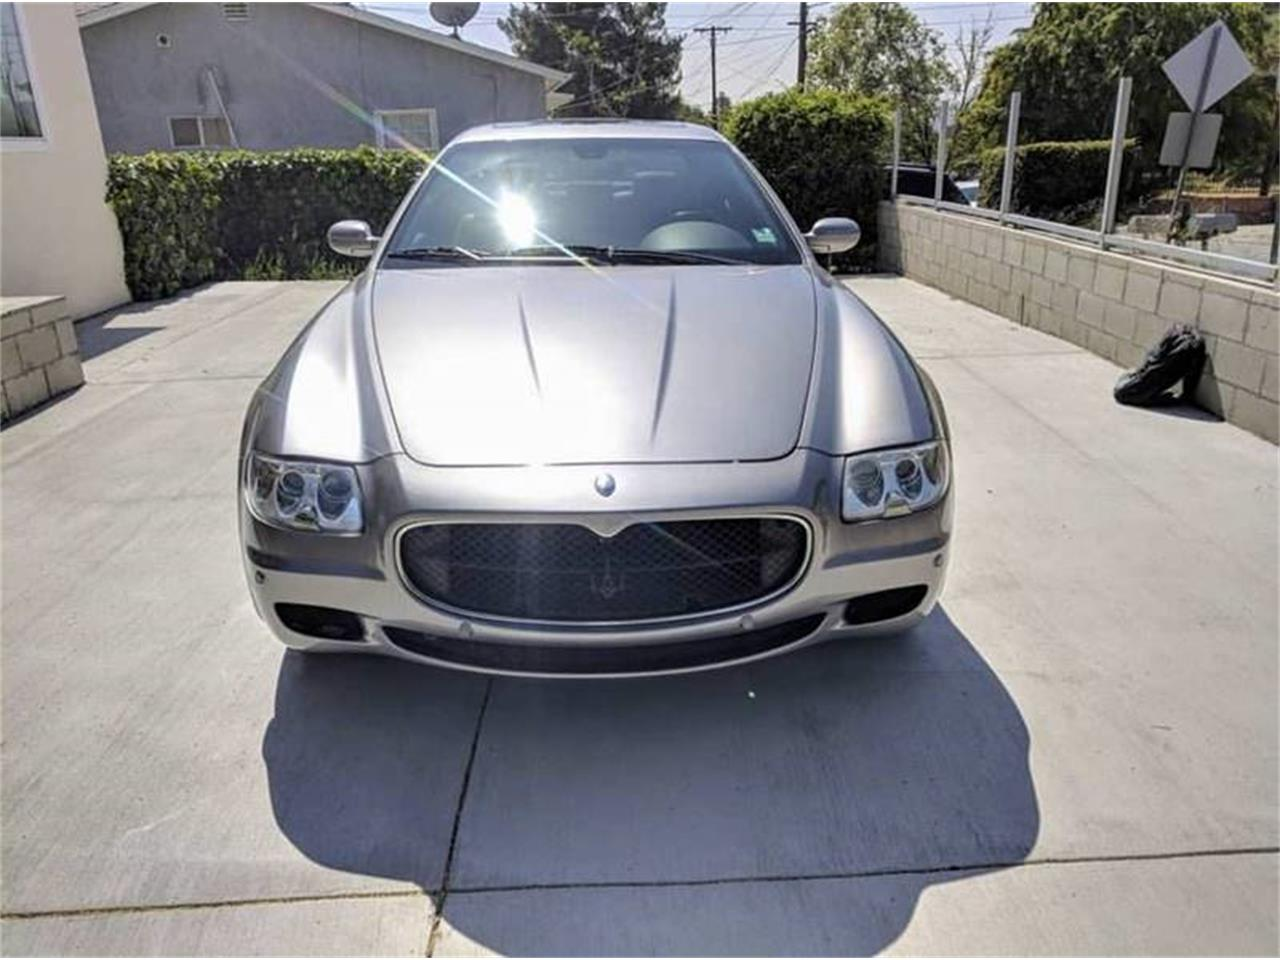 2007 Maserati Quattroporte for sale in Long Island, NY – photo 3